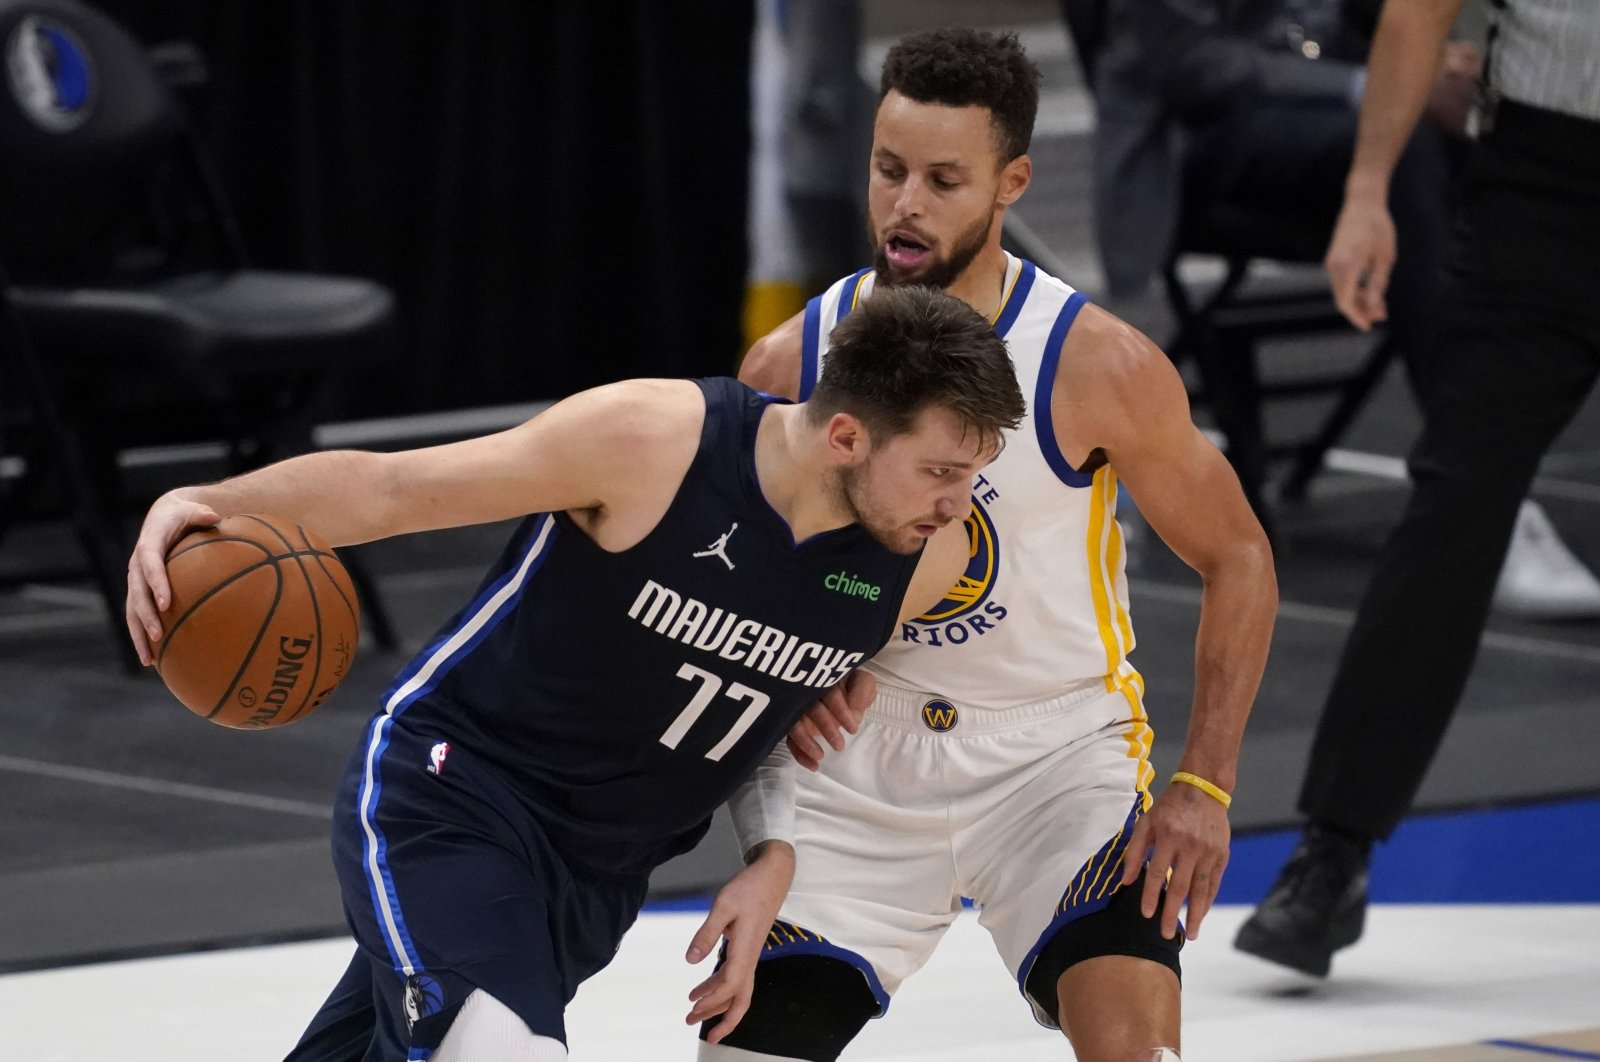 Dallas Mavericks' Luka Doncic (L) up against Golden State Warriors' Stephen Curry (R) in the second half of an NBA basketball game in Dallas, Texas, Feb. 6, 2021. (AP Photo)